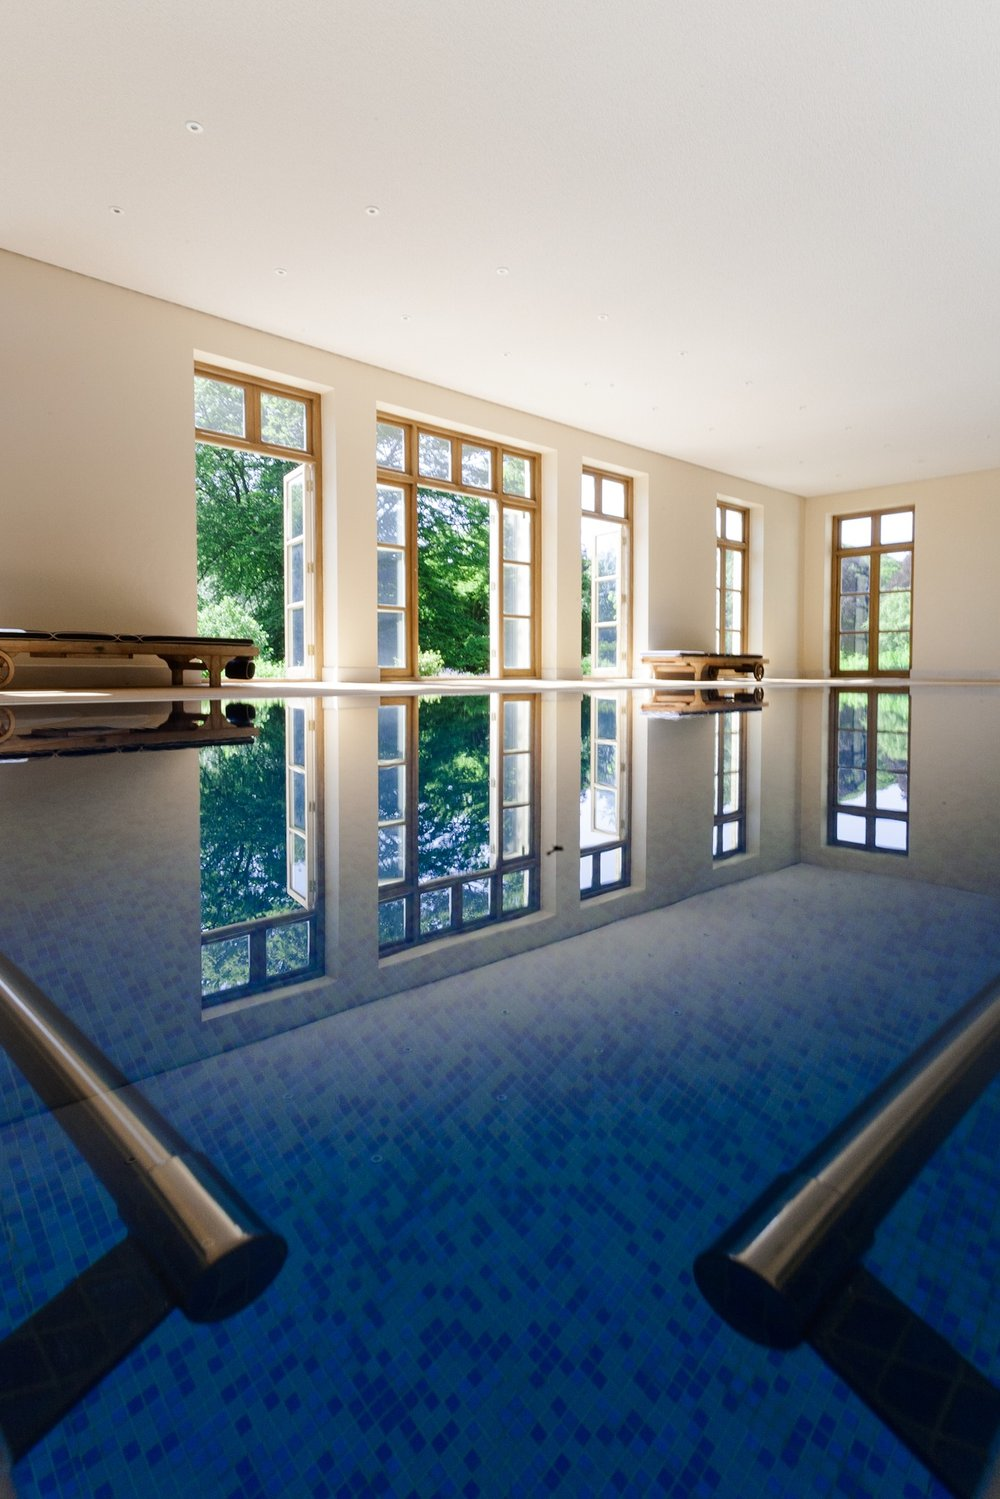 Picture of a swimming pool by Rick McEvoy - interior photographer in Dorset